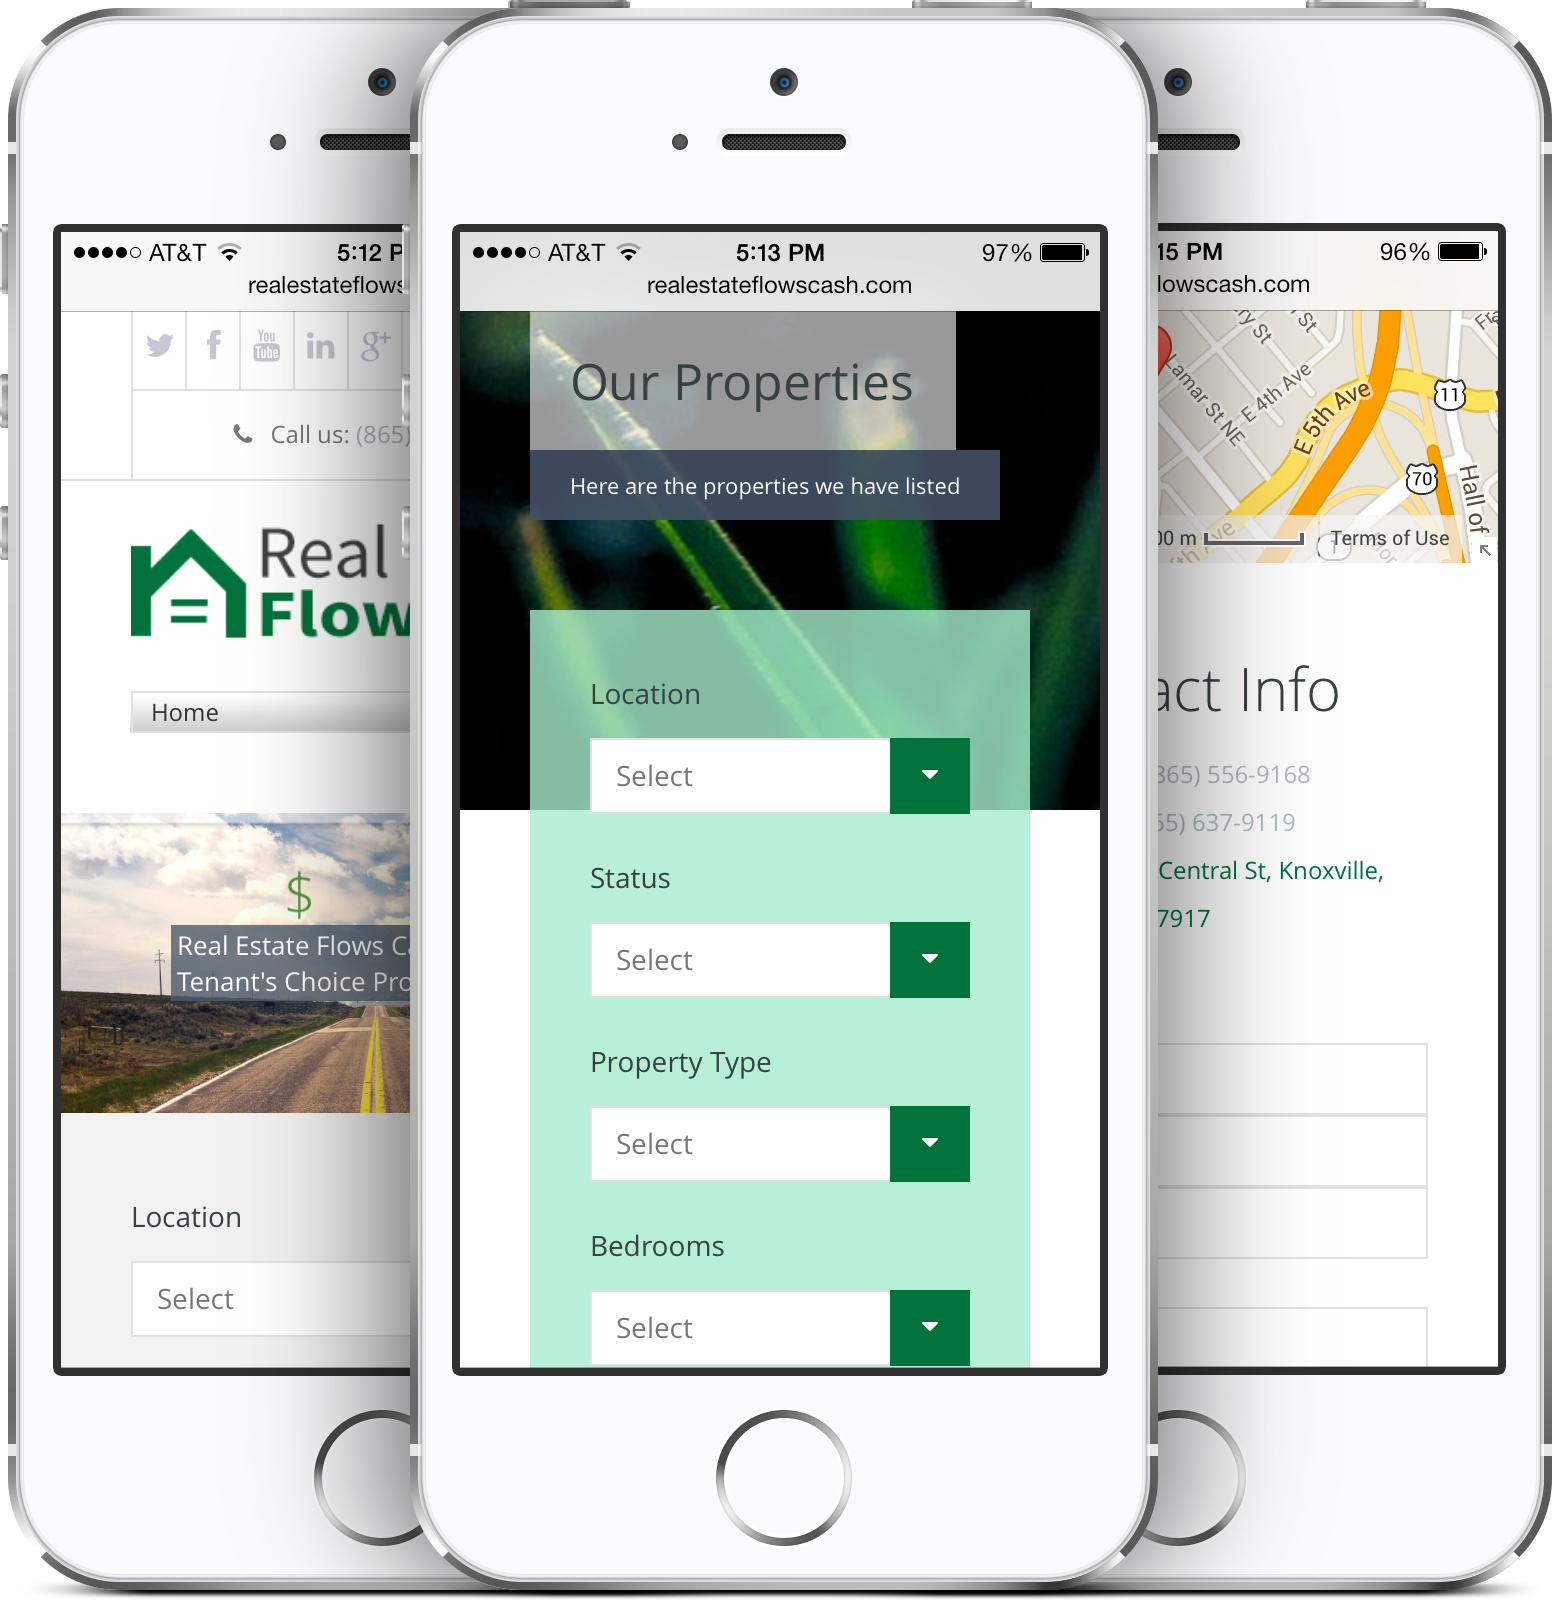 Real Estate Flows Cash Responsive Web Design on an iPhone